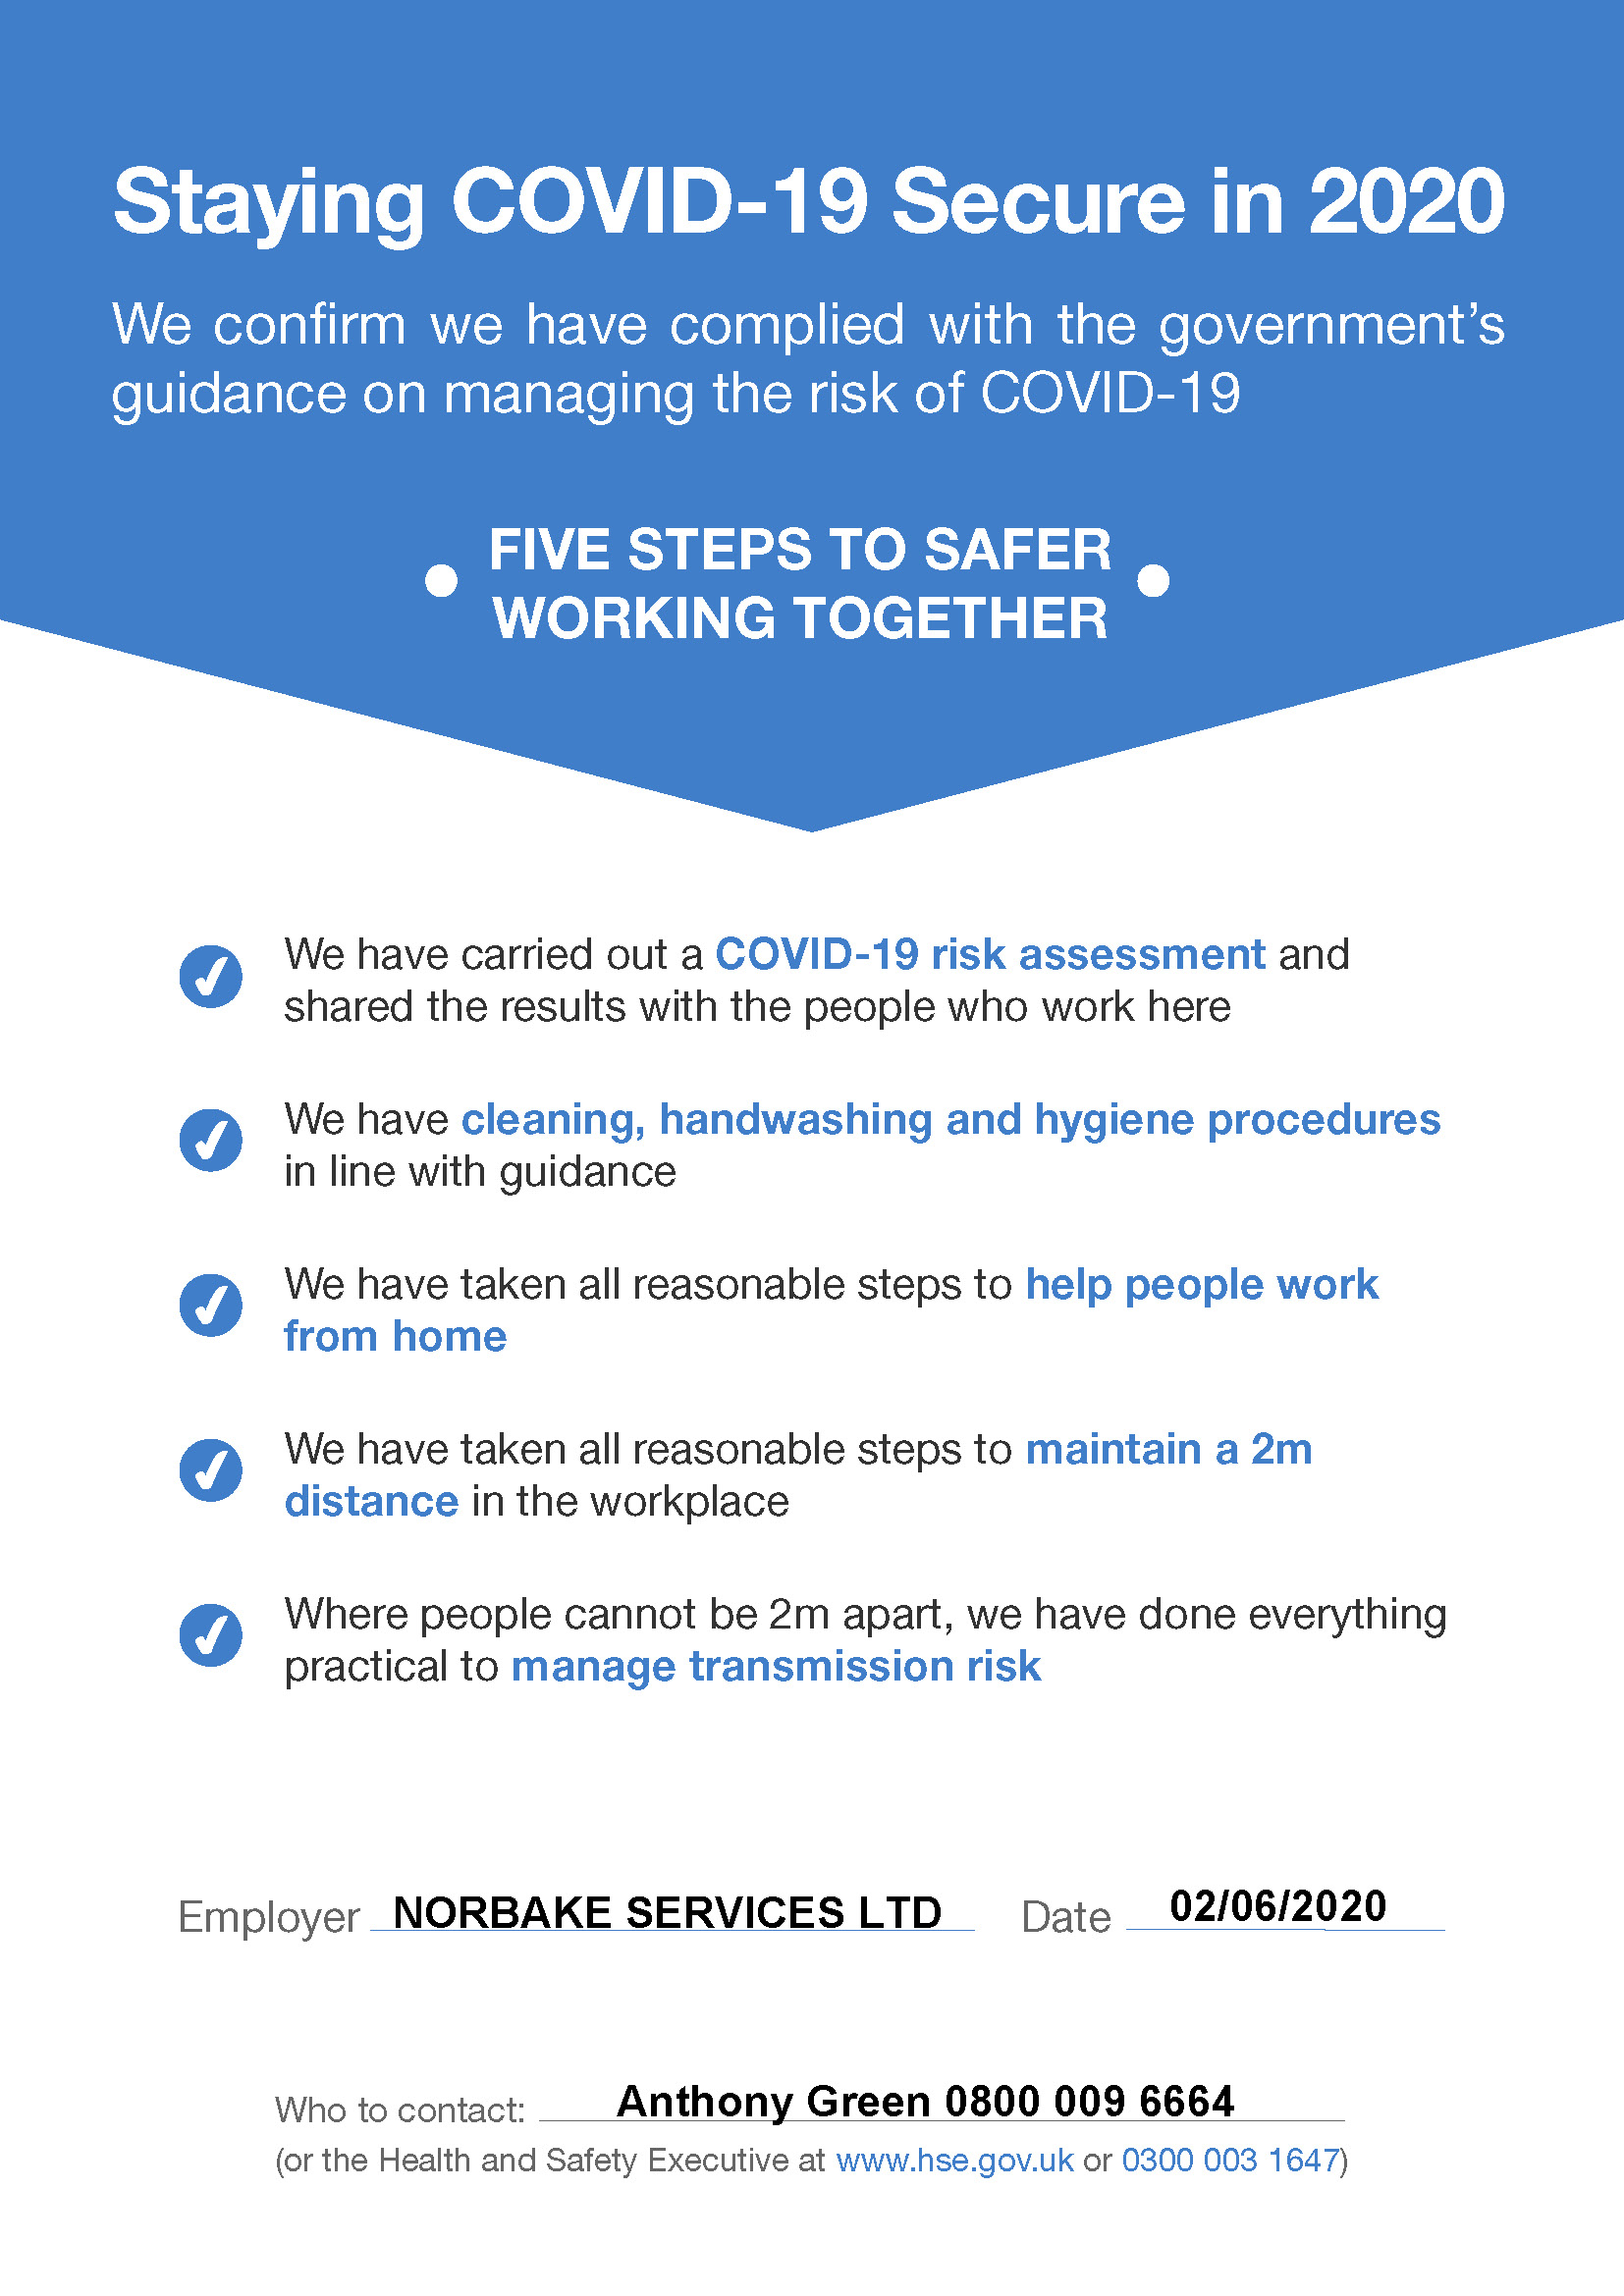 Norgroup | COVID-19 Secure